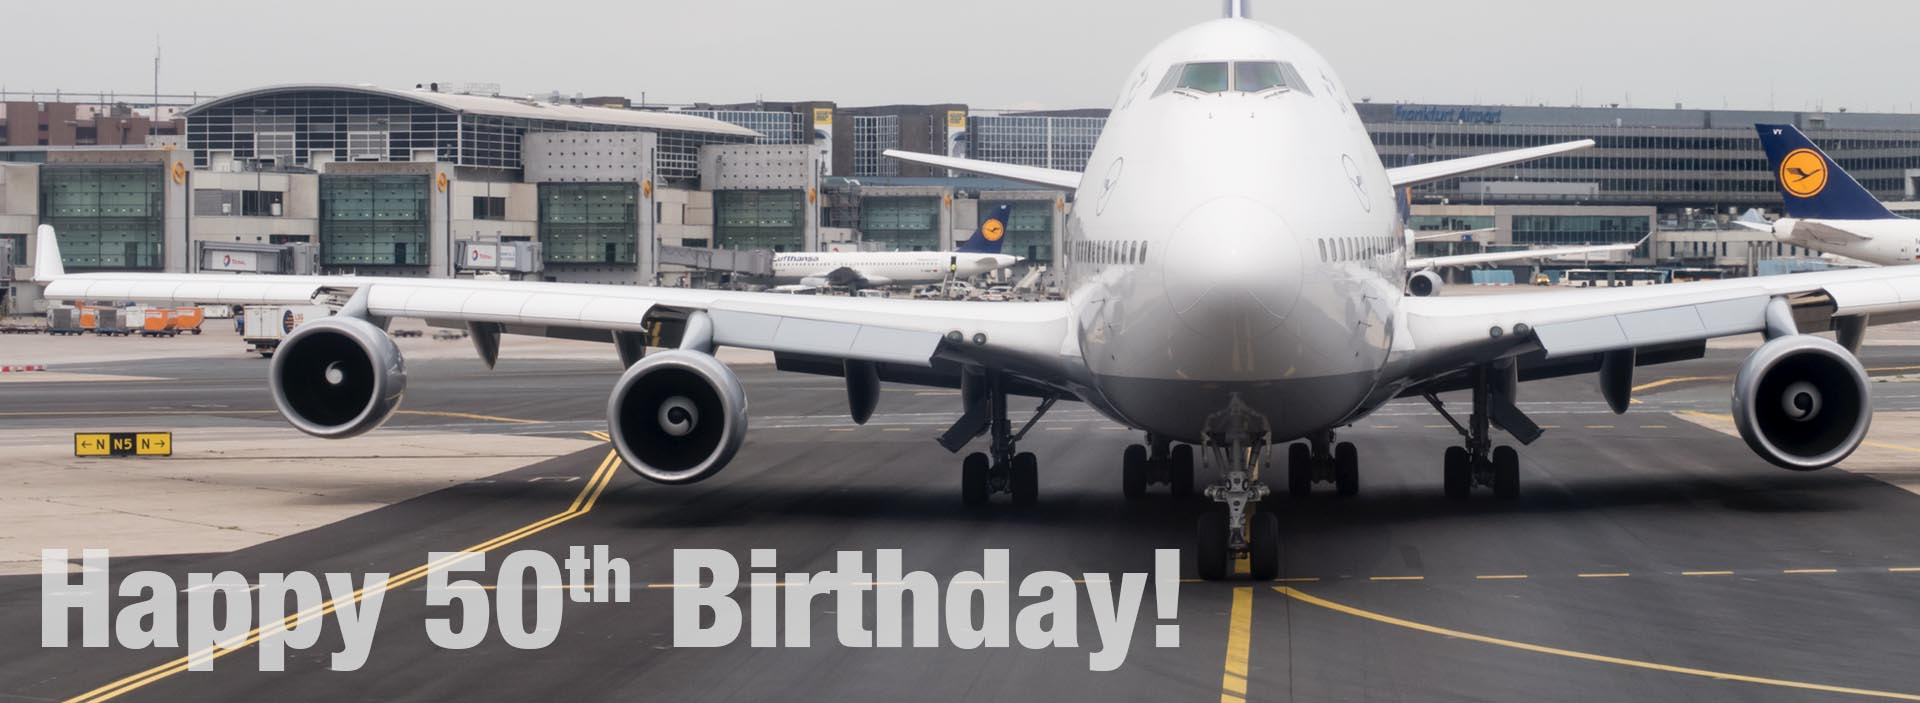 Happy 50th Birthday, Queen of the Skies! Celebrating with My Favorite 747 Photos